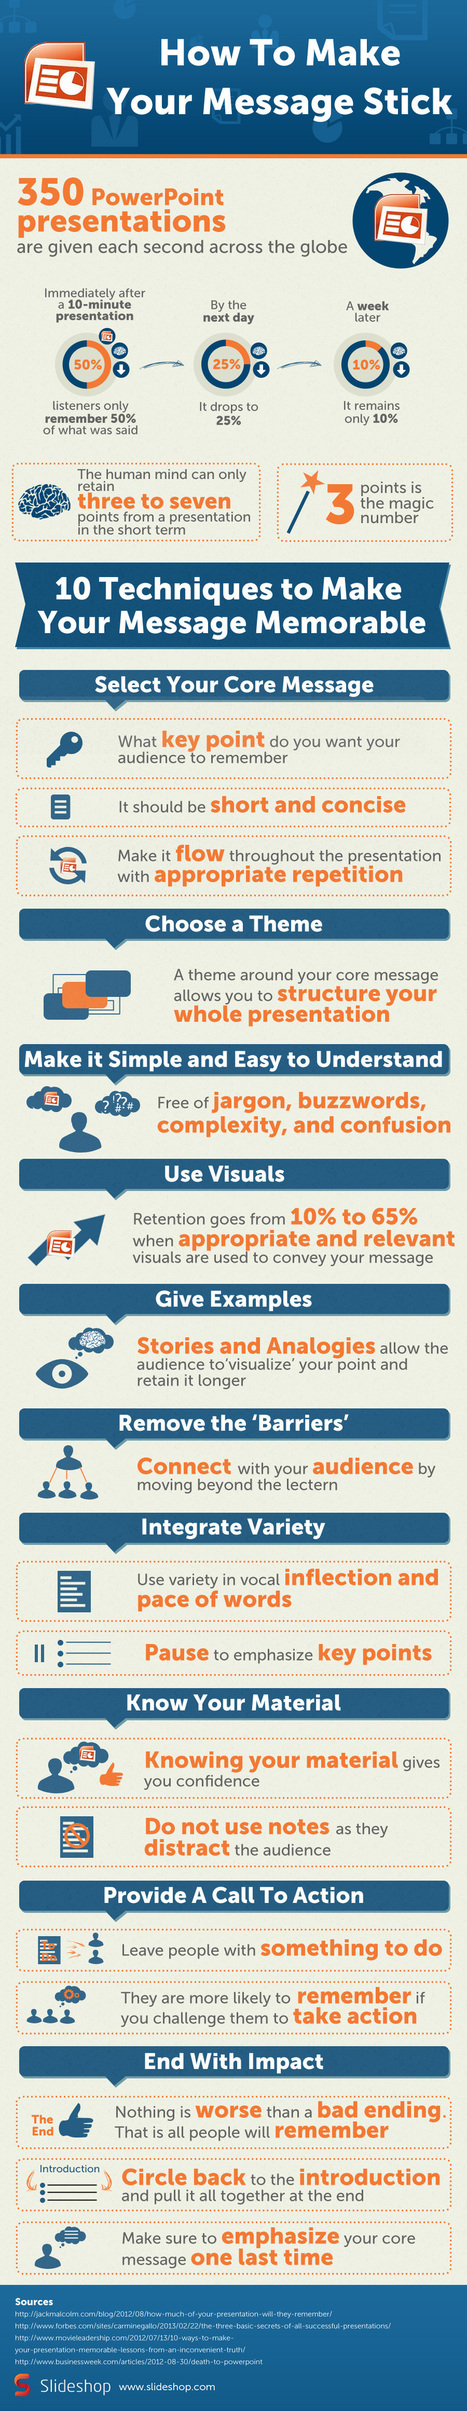 Presentations Infographic: Making Your Message Stick | Serious Play | Scoop.it